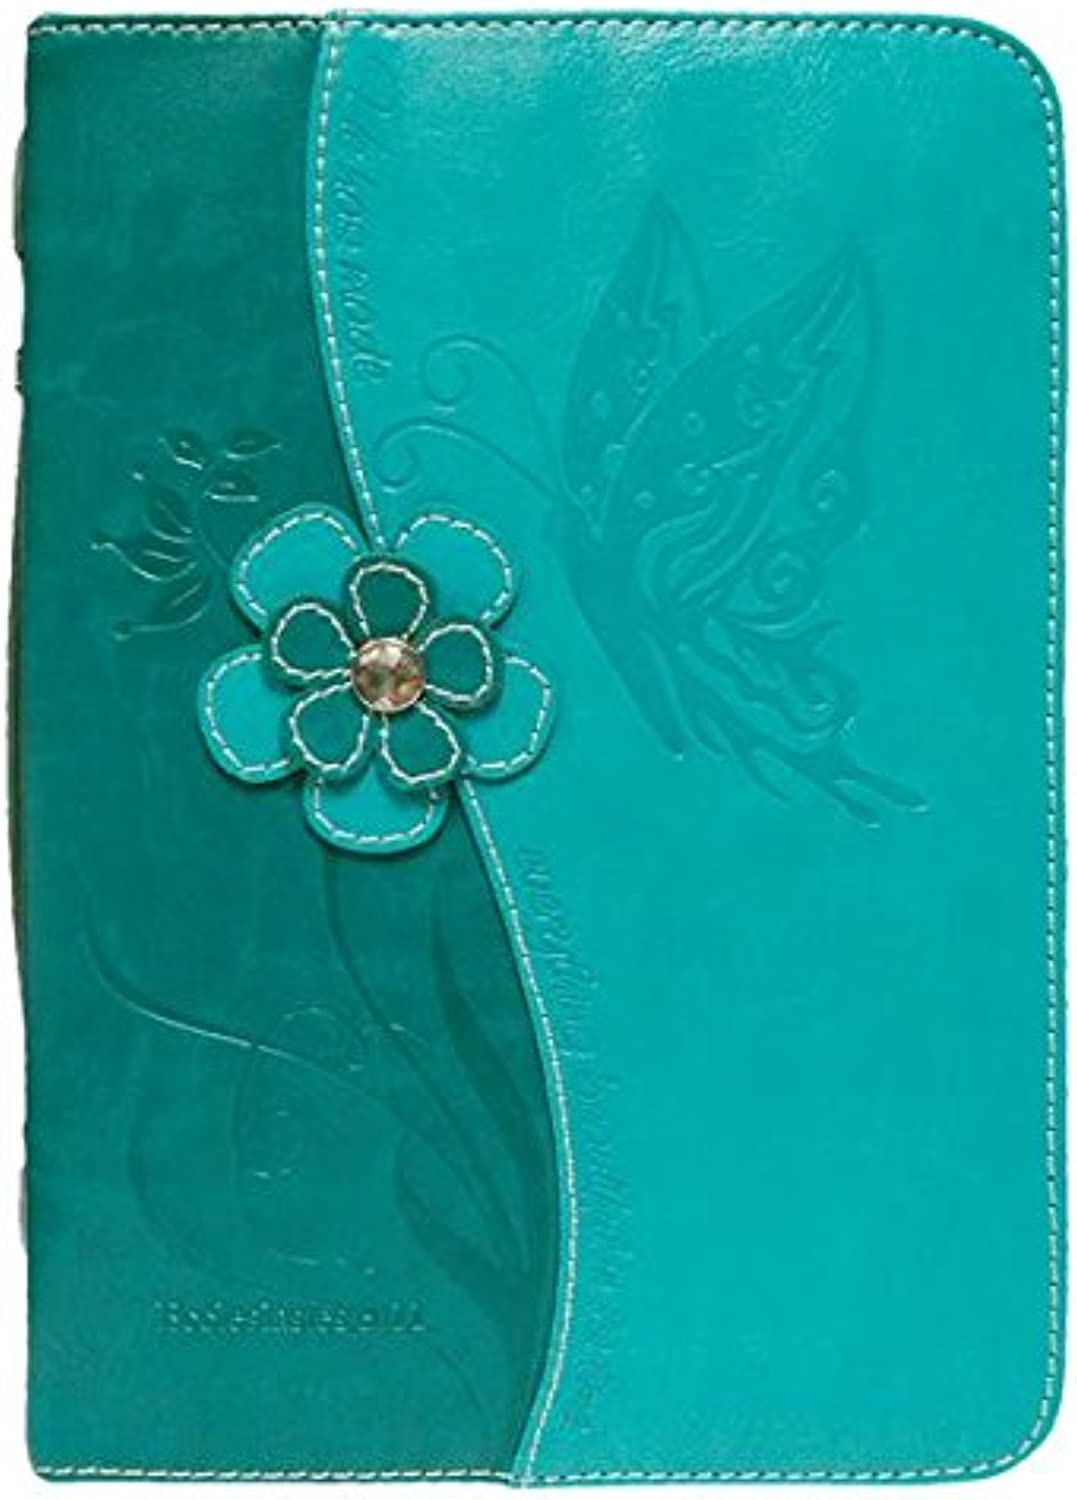 Divinity Boutique Teal bluee Butterfly (M) Bible Cover